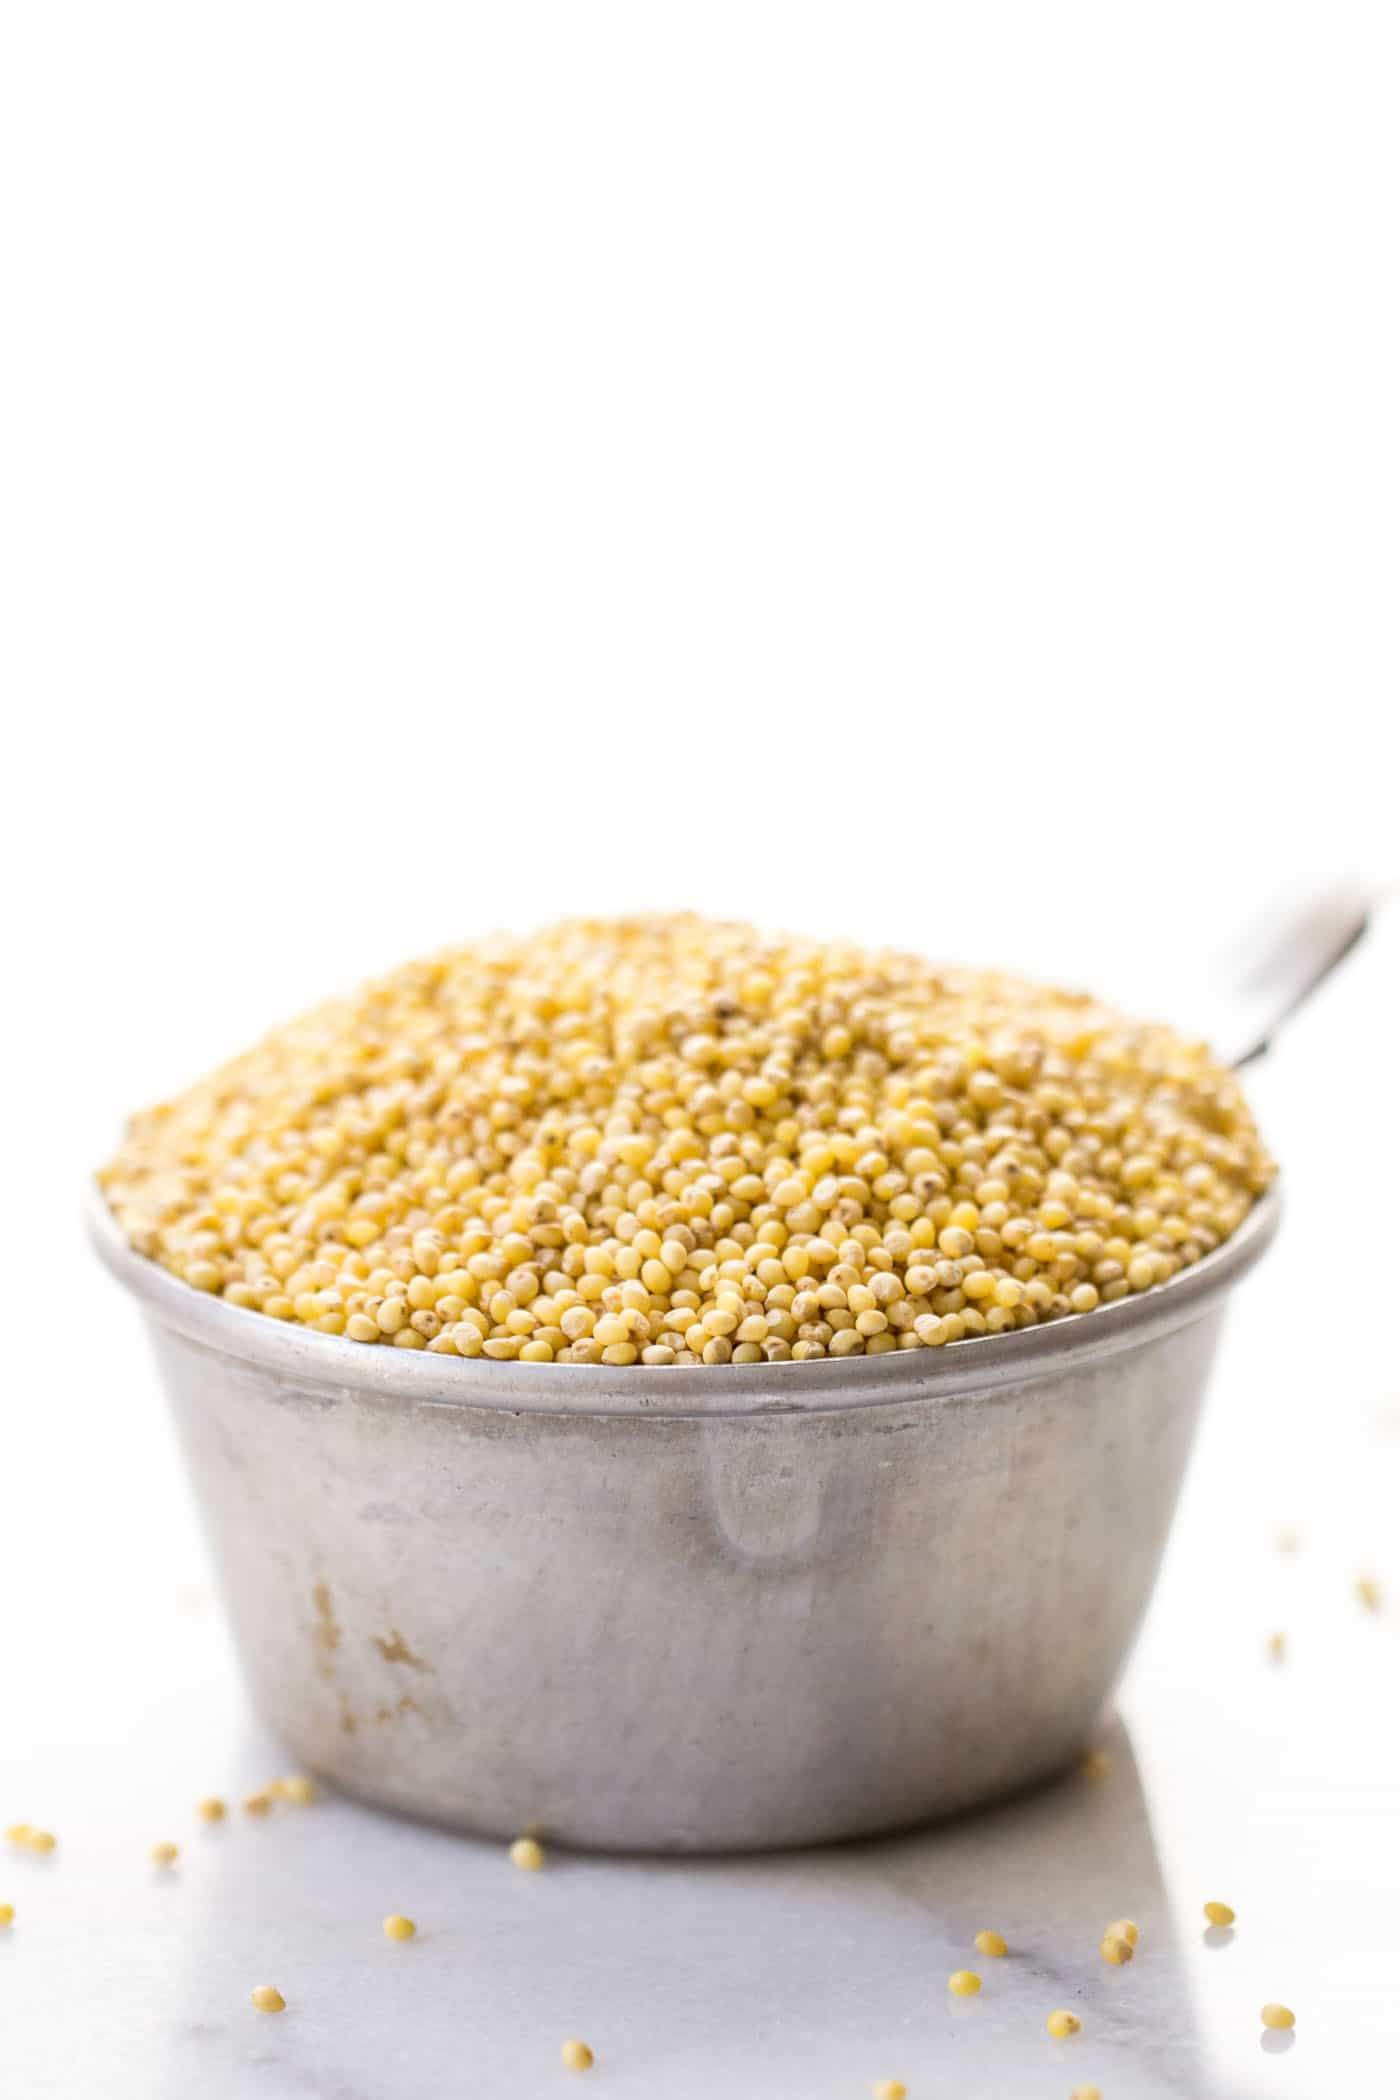 MILLET: one of the six staple whole grains you should have you in your pantry!